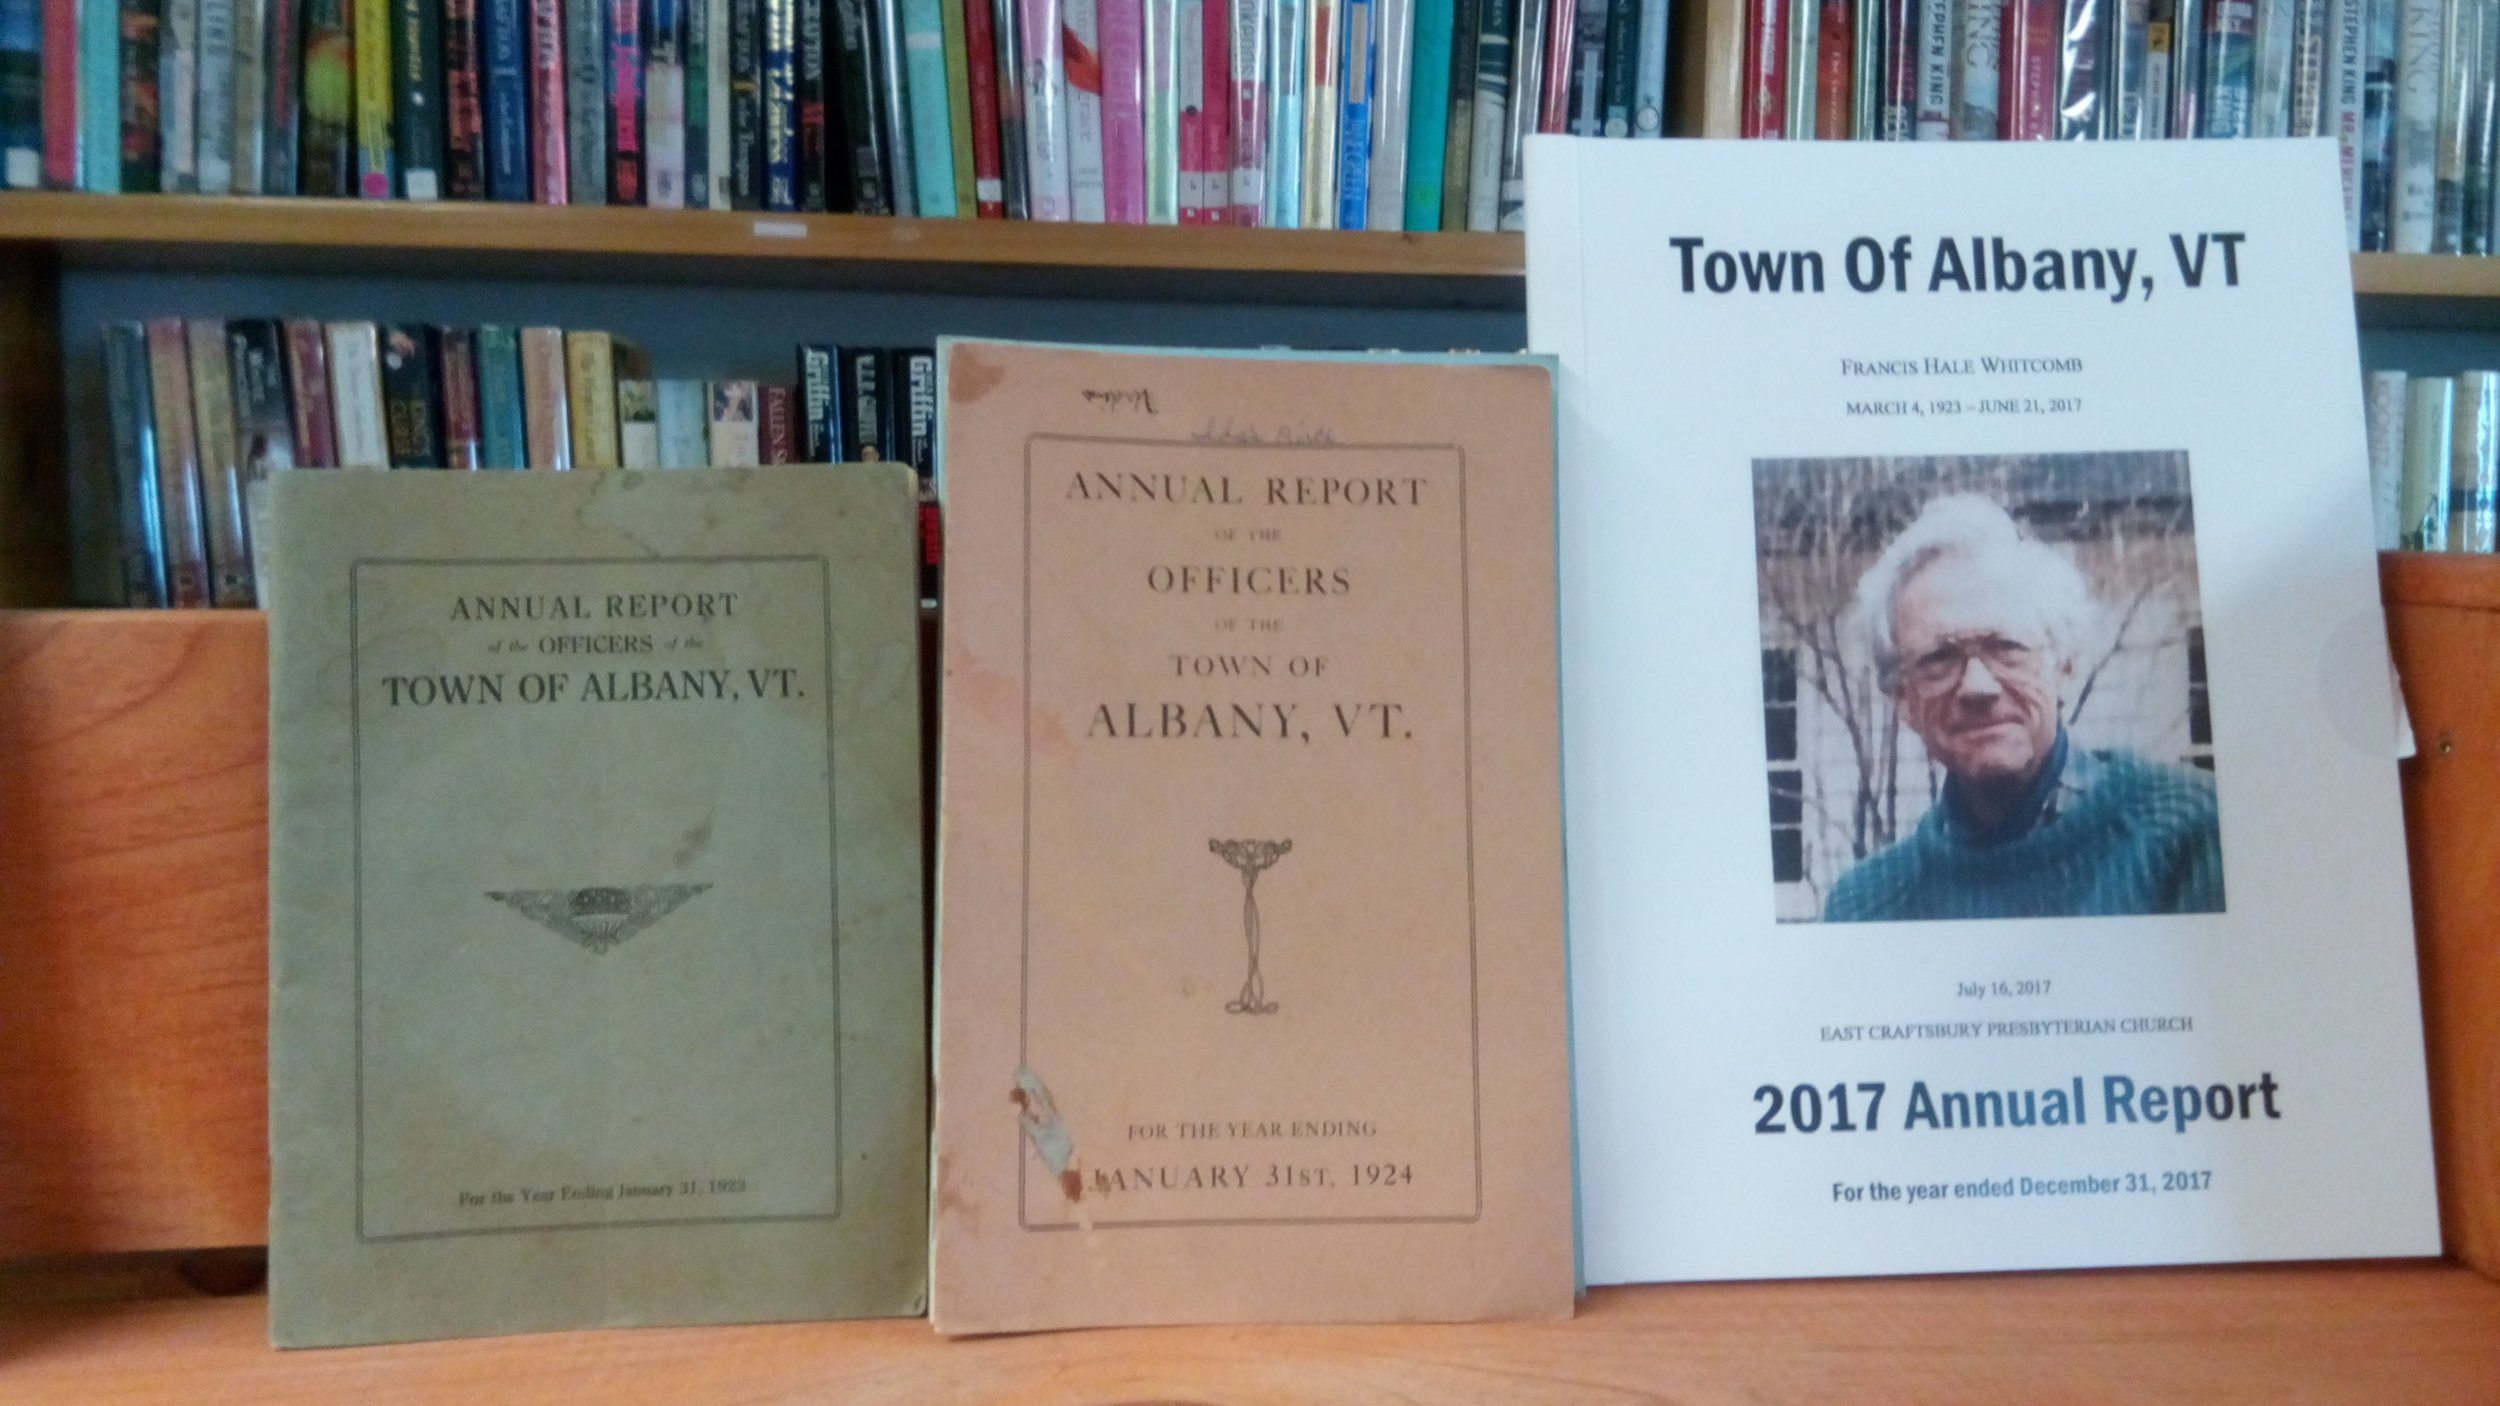 Just a few books in our Local History Selection.